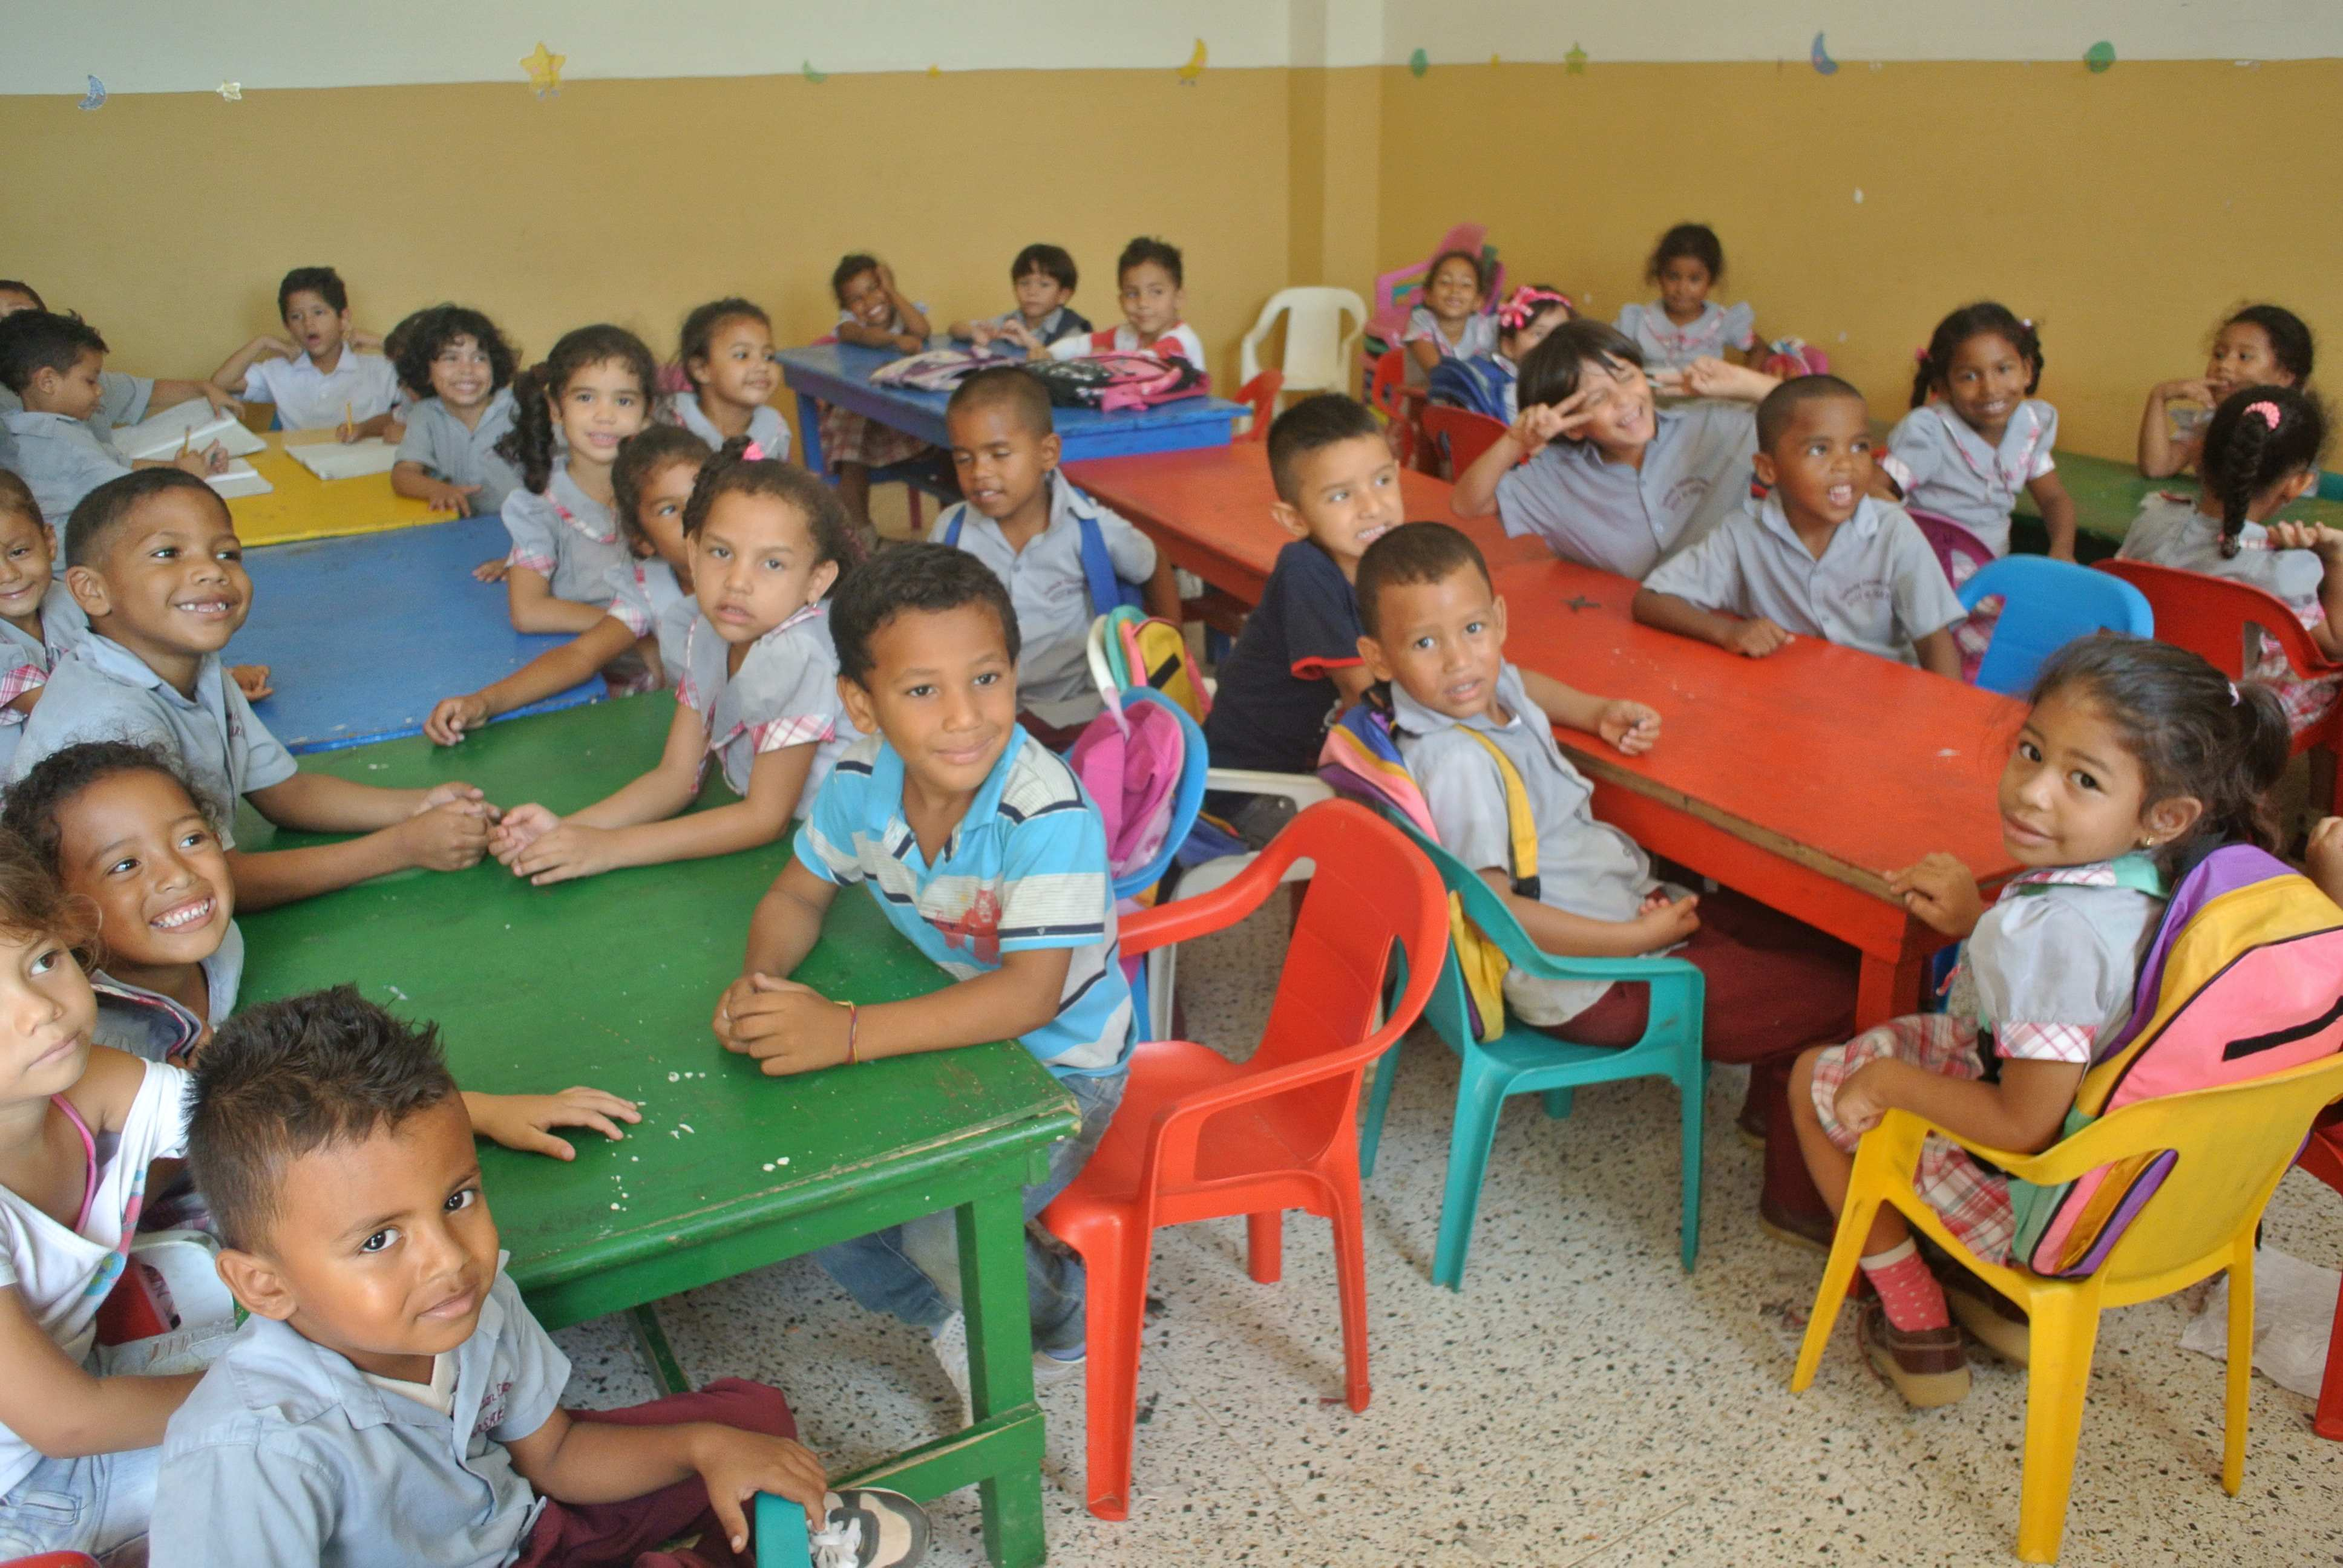 A classroom of smiling school children in Columbia.